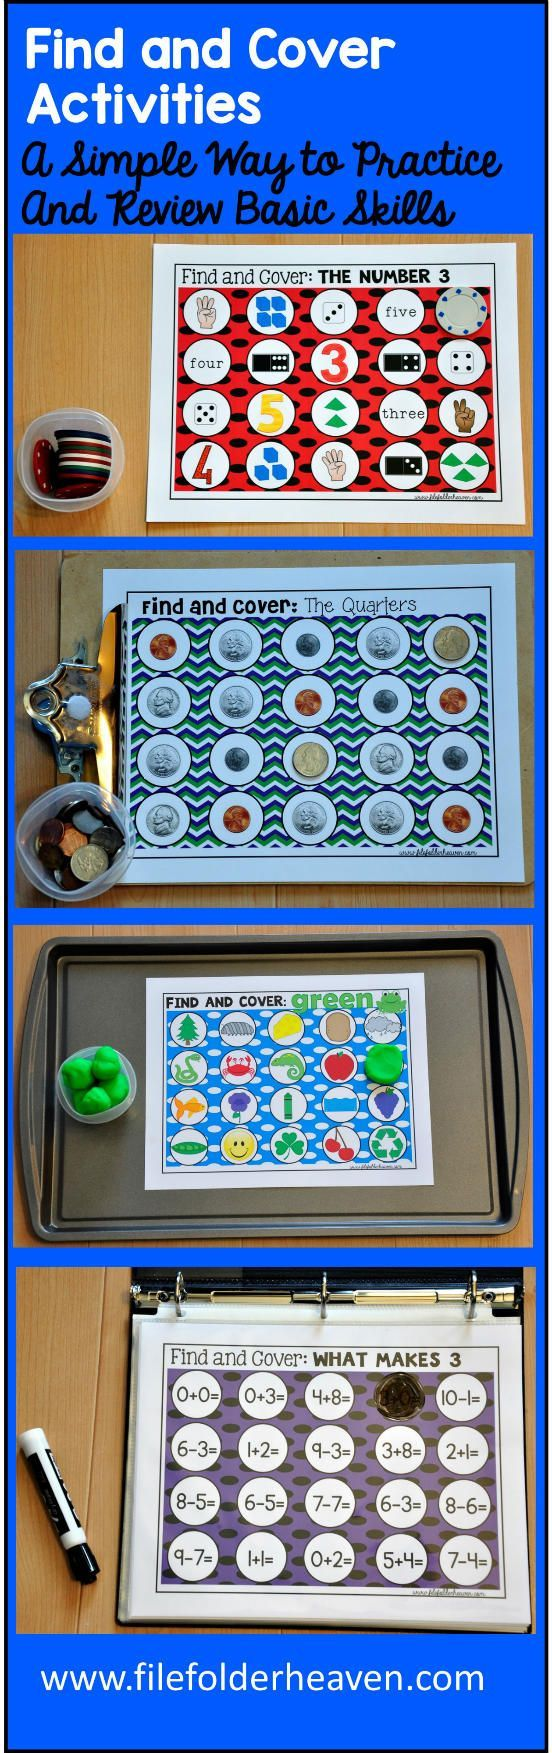 Best 15 School readiness images on Pinterest | Fine motor, Day care ...